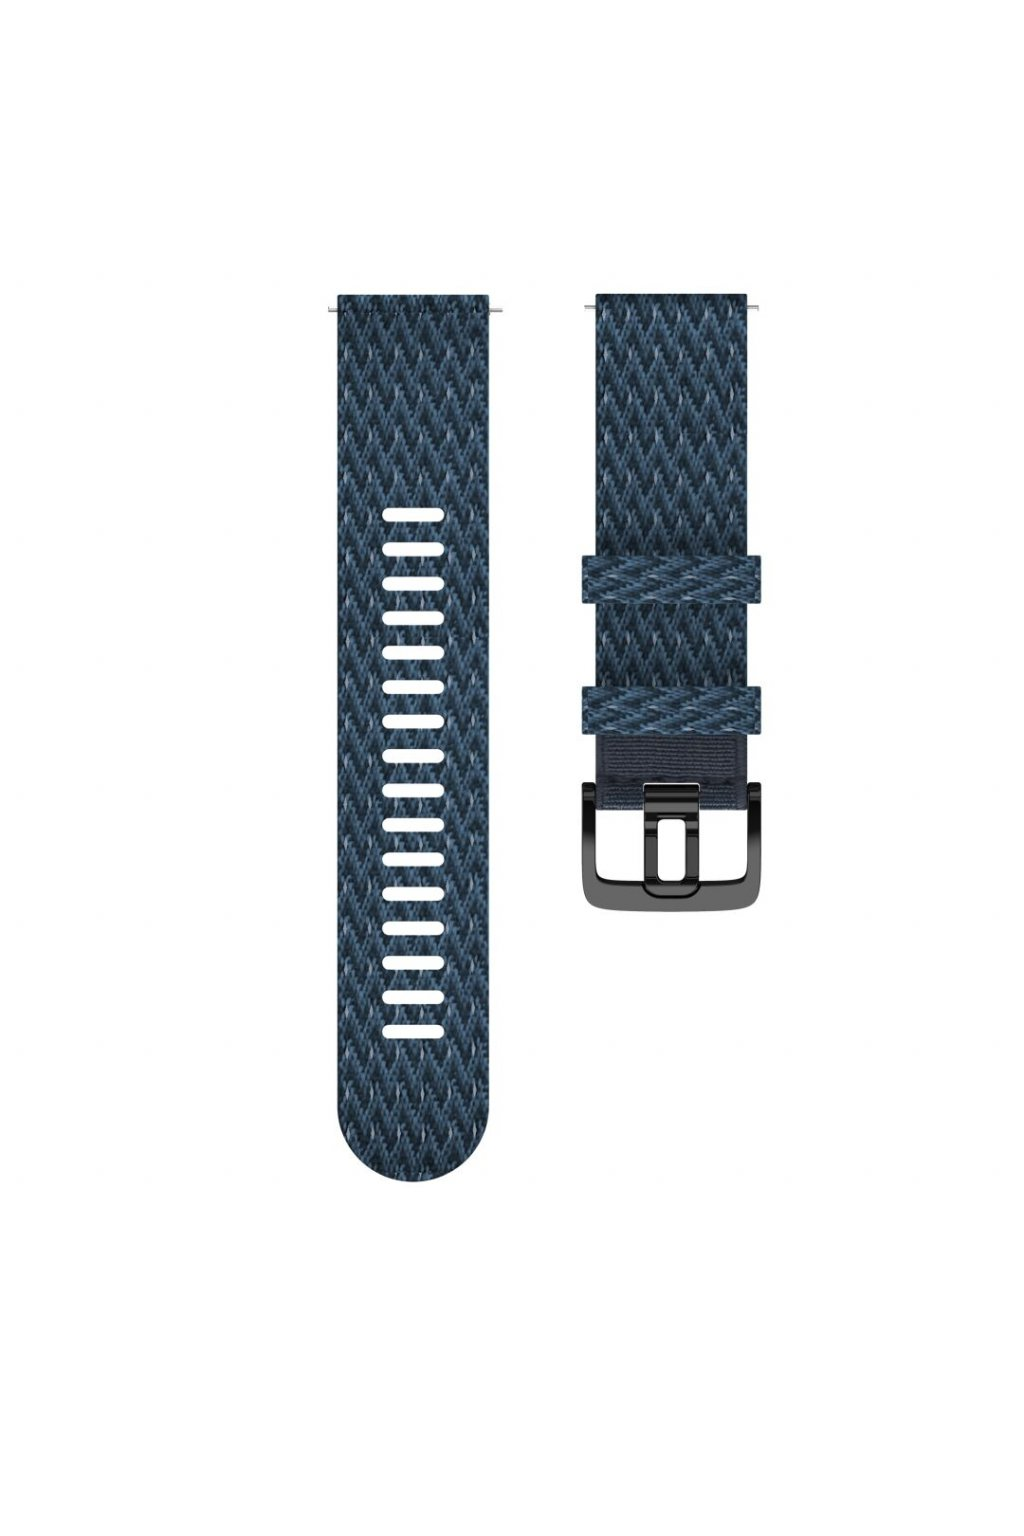 Polar Grit X wristband paracord blue 2